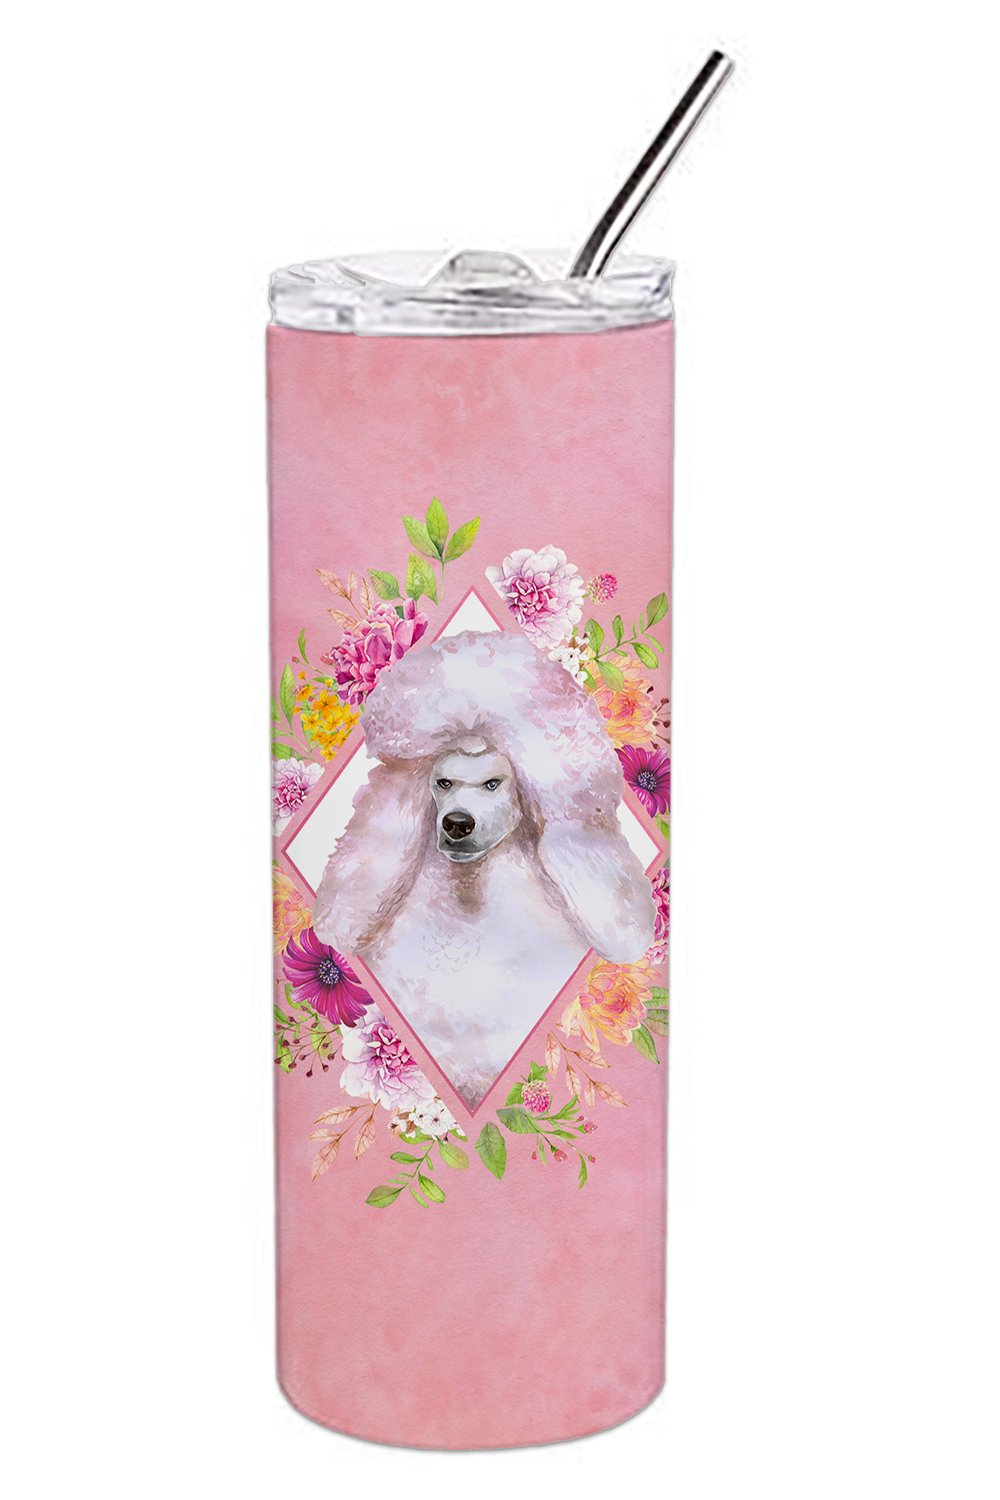 Standard White Poodle Pink Flowers Double Walled Stainless Steel 20 oz Skinny Tumbler CK4171TBL20 by Caroline's Treasures